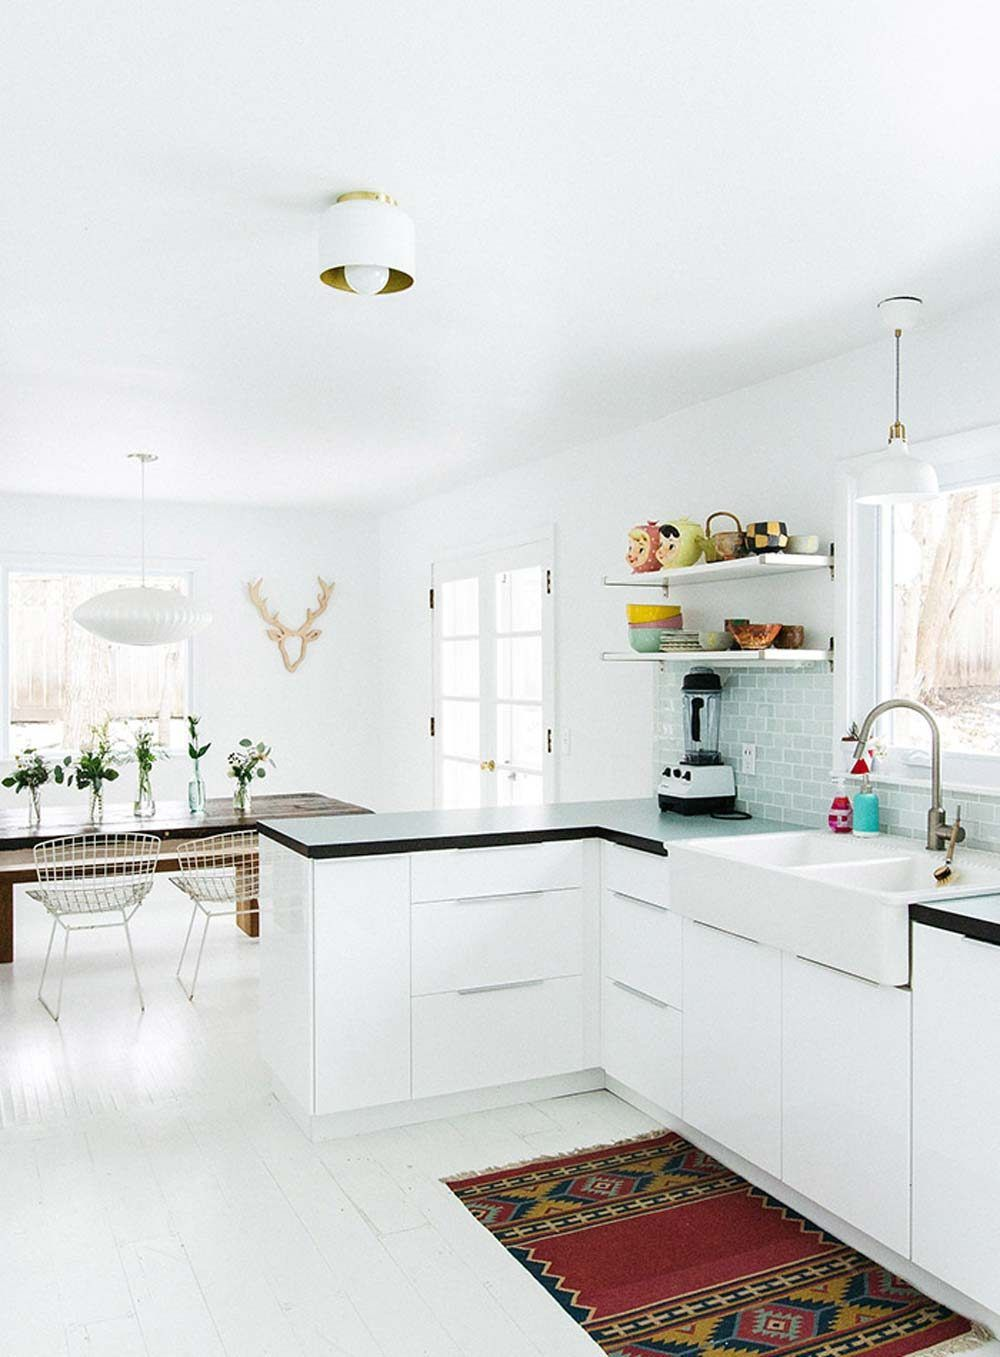 White Kitchens With White Floors White Kitchen With White Floors Subtle Mint Finishes And Quirky